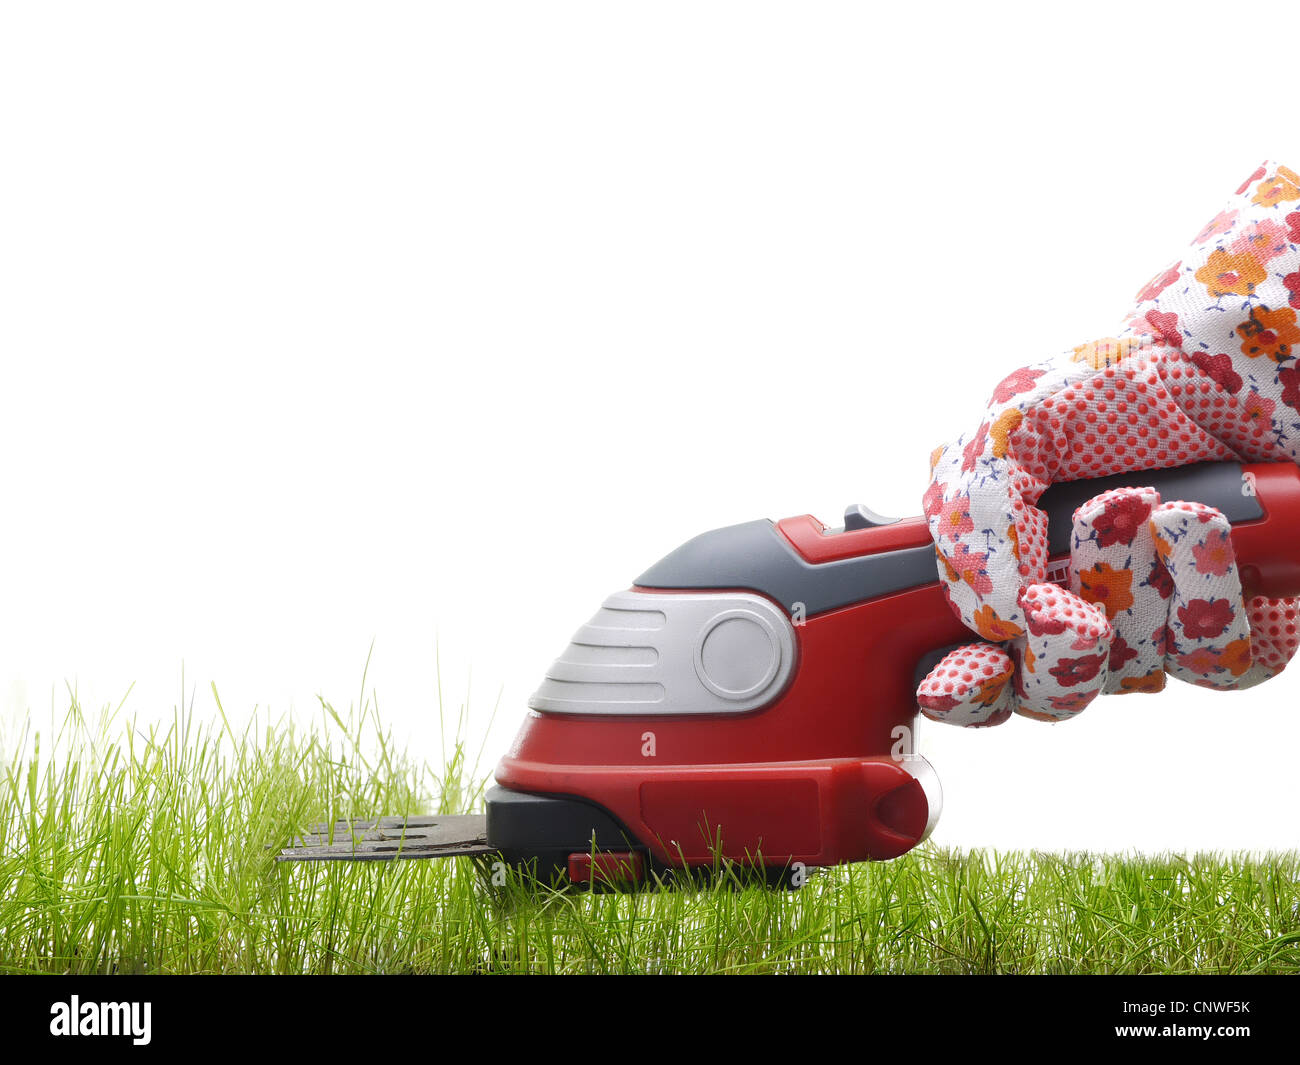 Gardener's hand in glove trimming fresh grass with trimmer - Stock Image